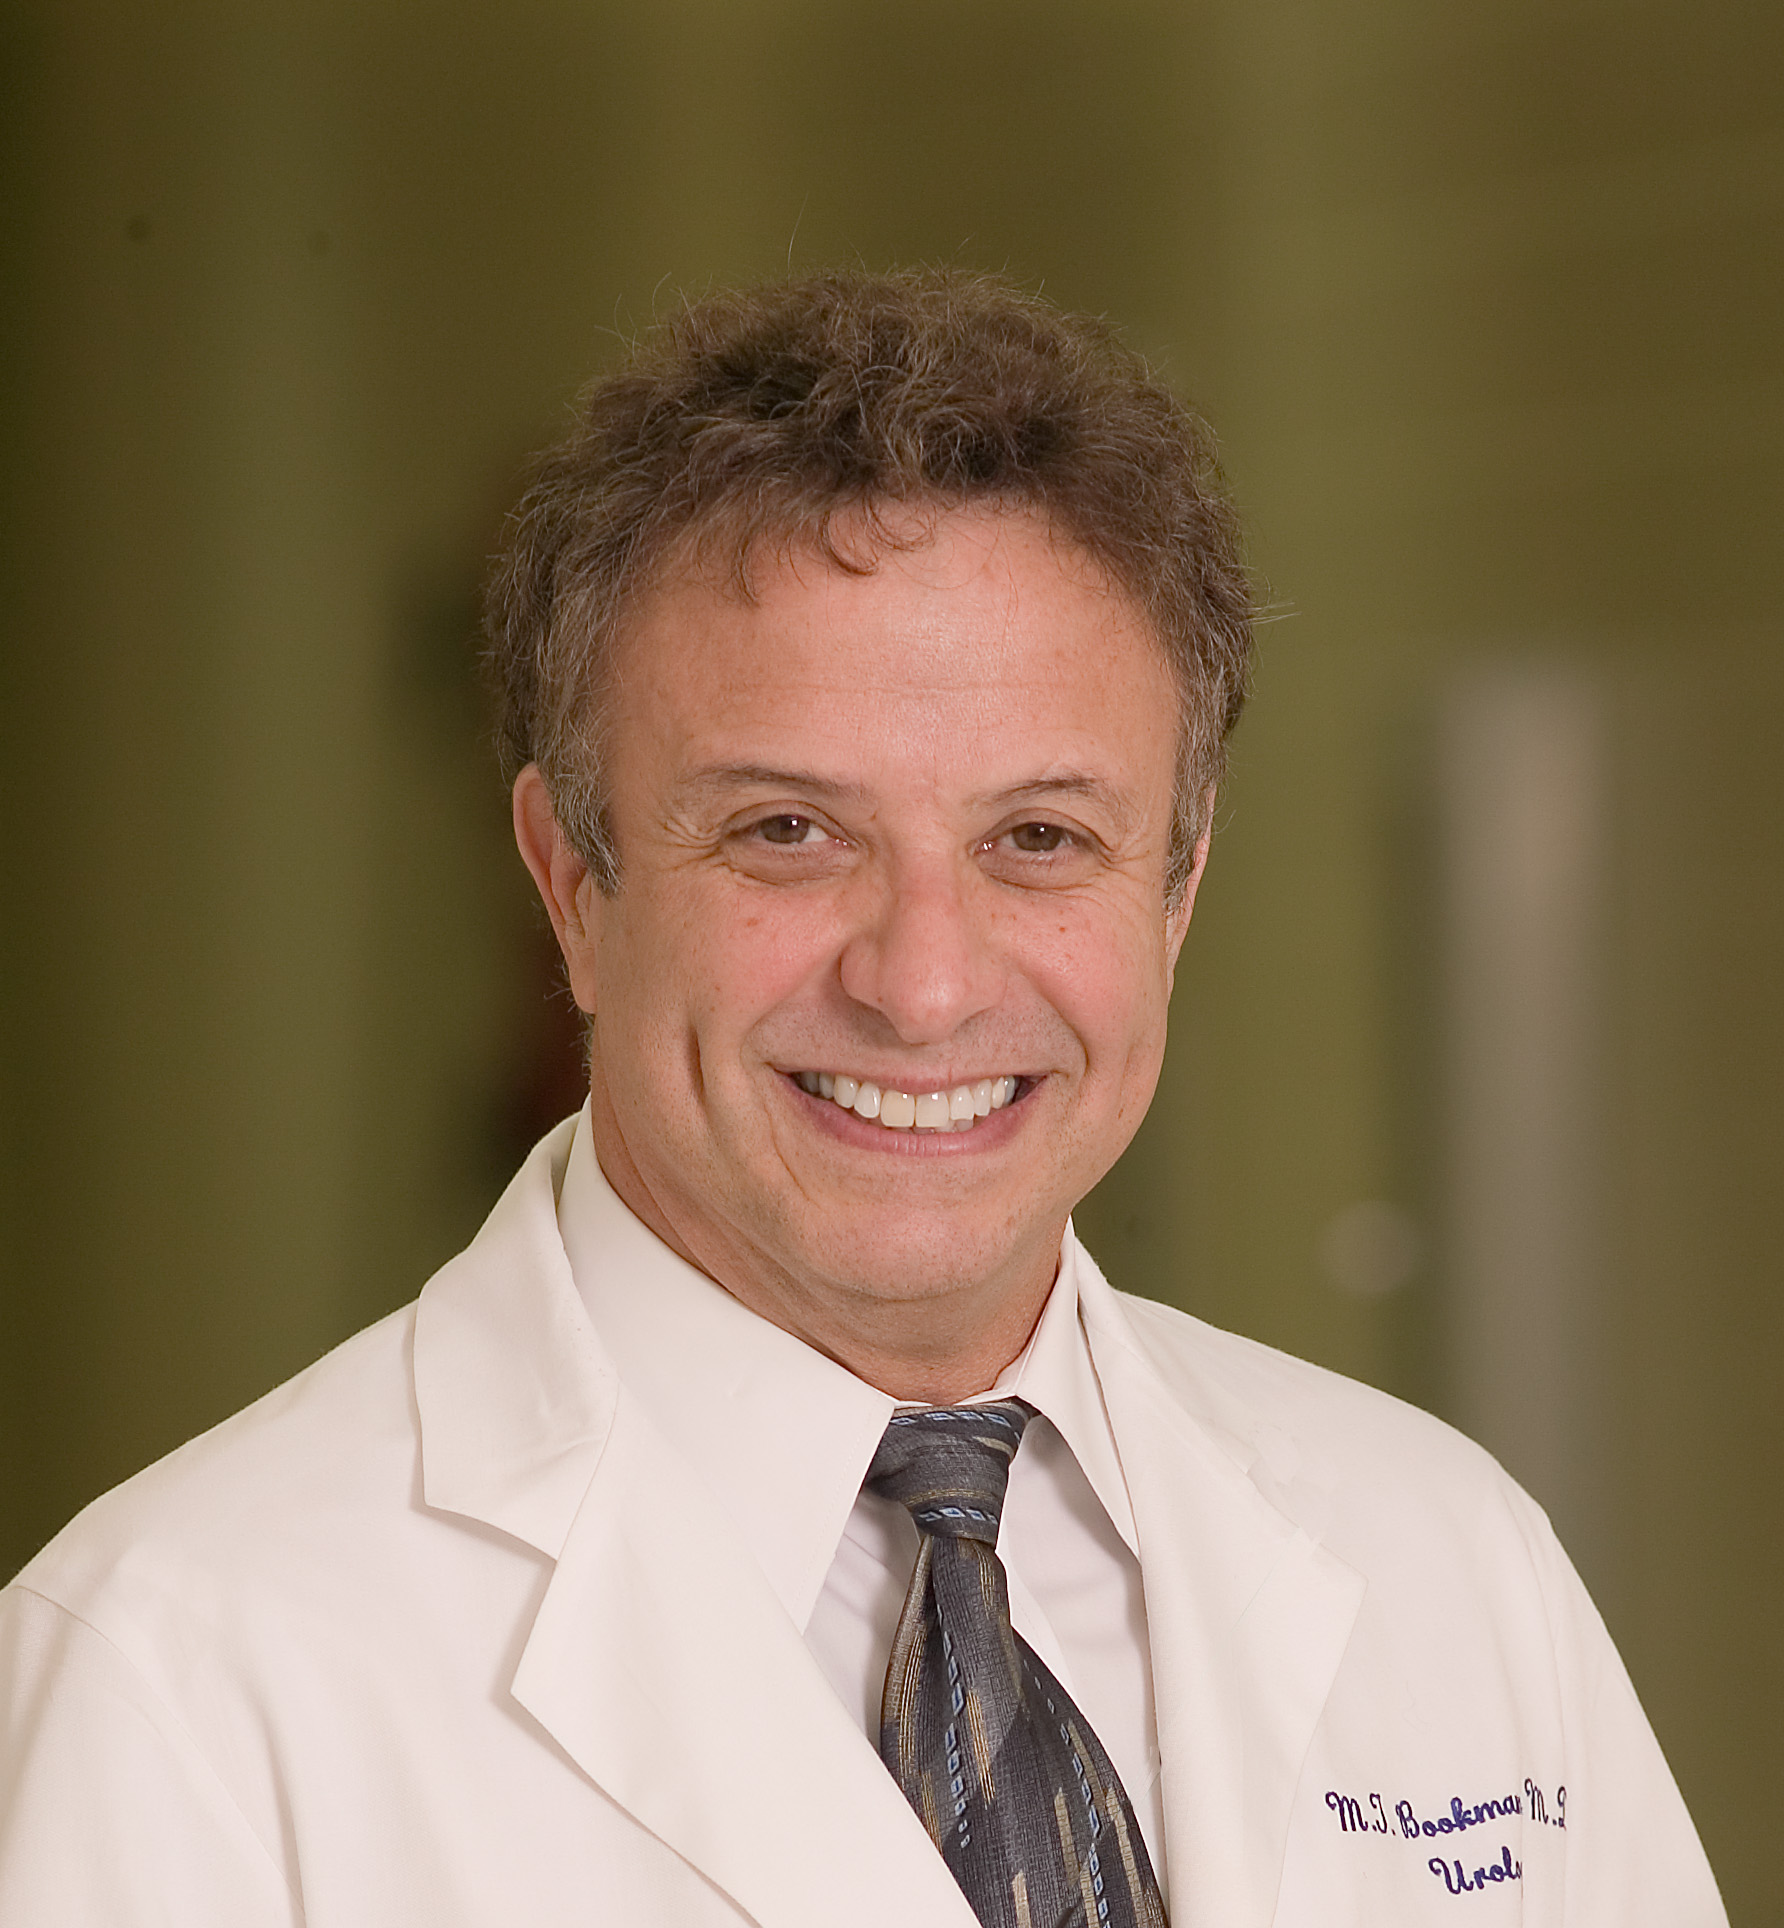 Mandell Bookman, MD